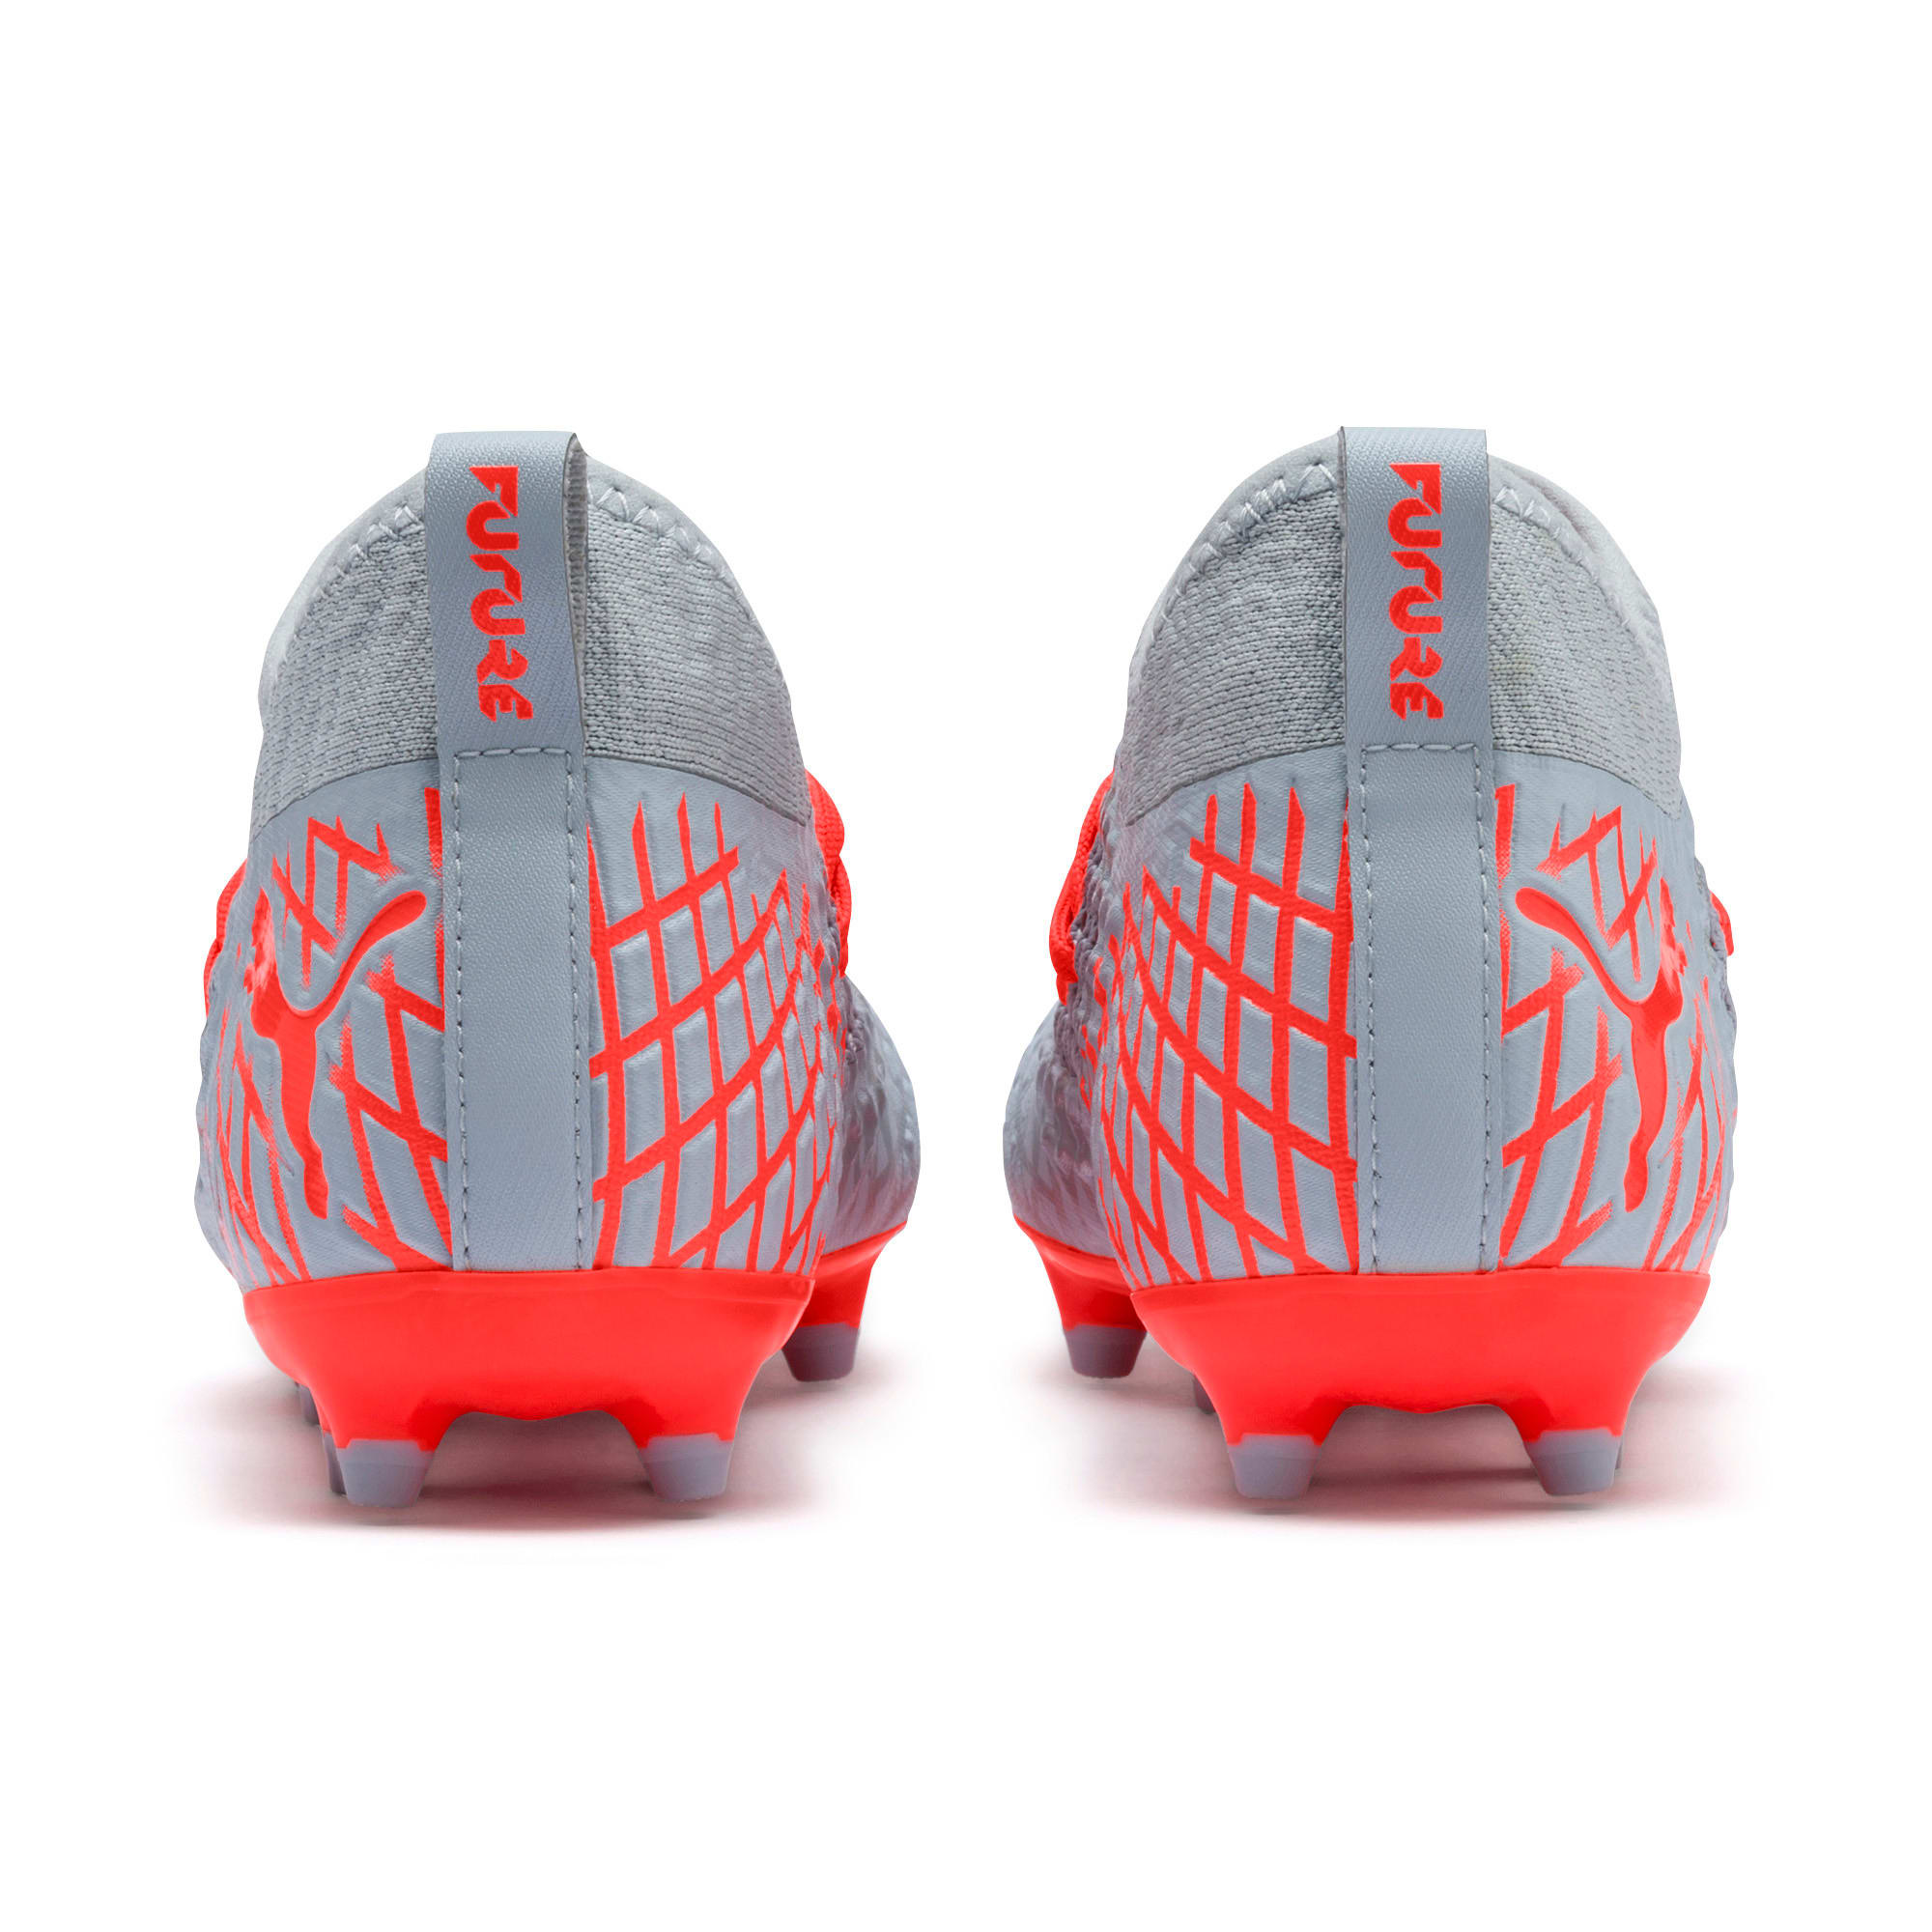 Thumbnail 3 of FUTURE 4.3 NETFIT FG/AG Youth Fußballschuhe, Glacial Blue-Nrgy Red, medium